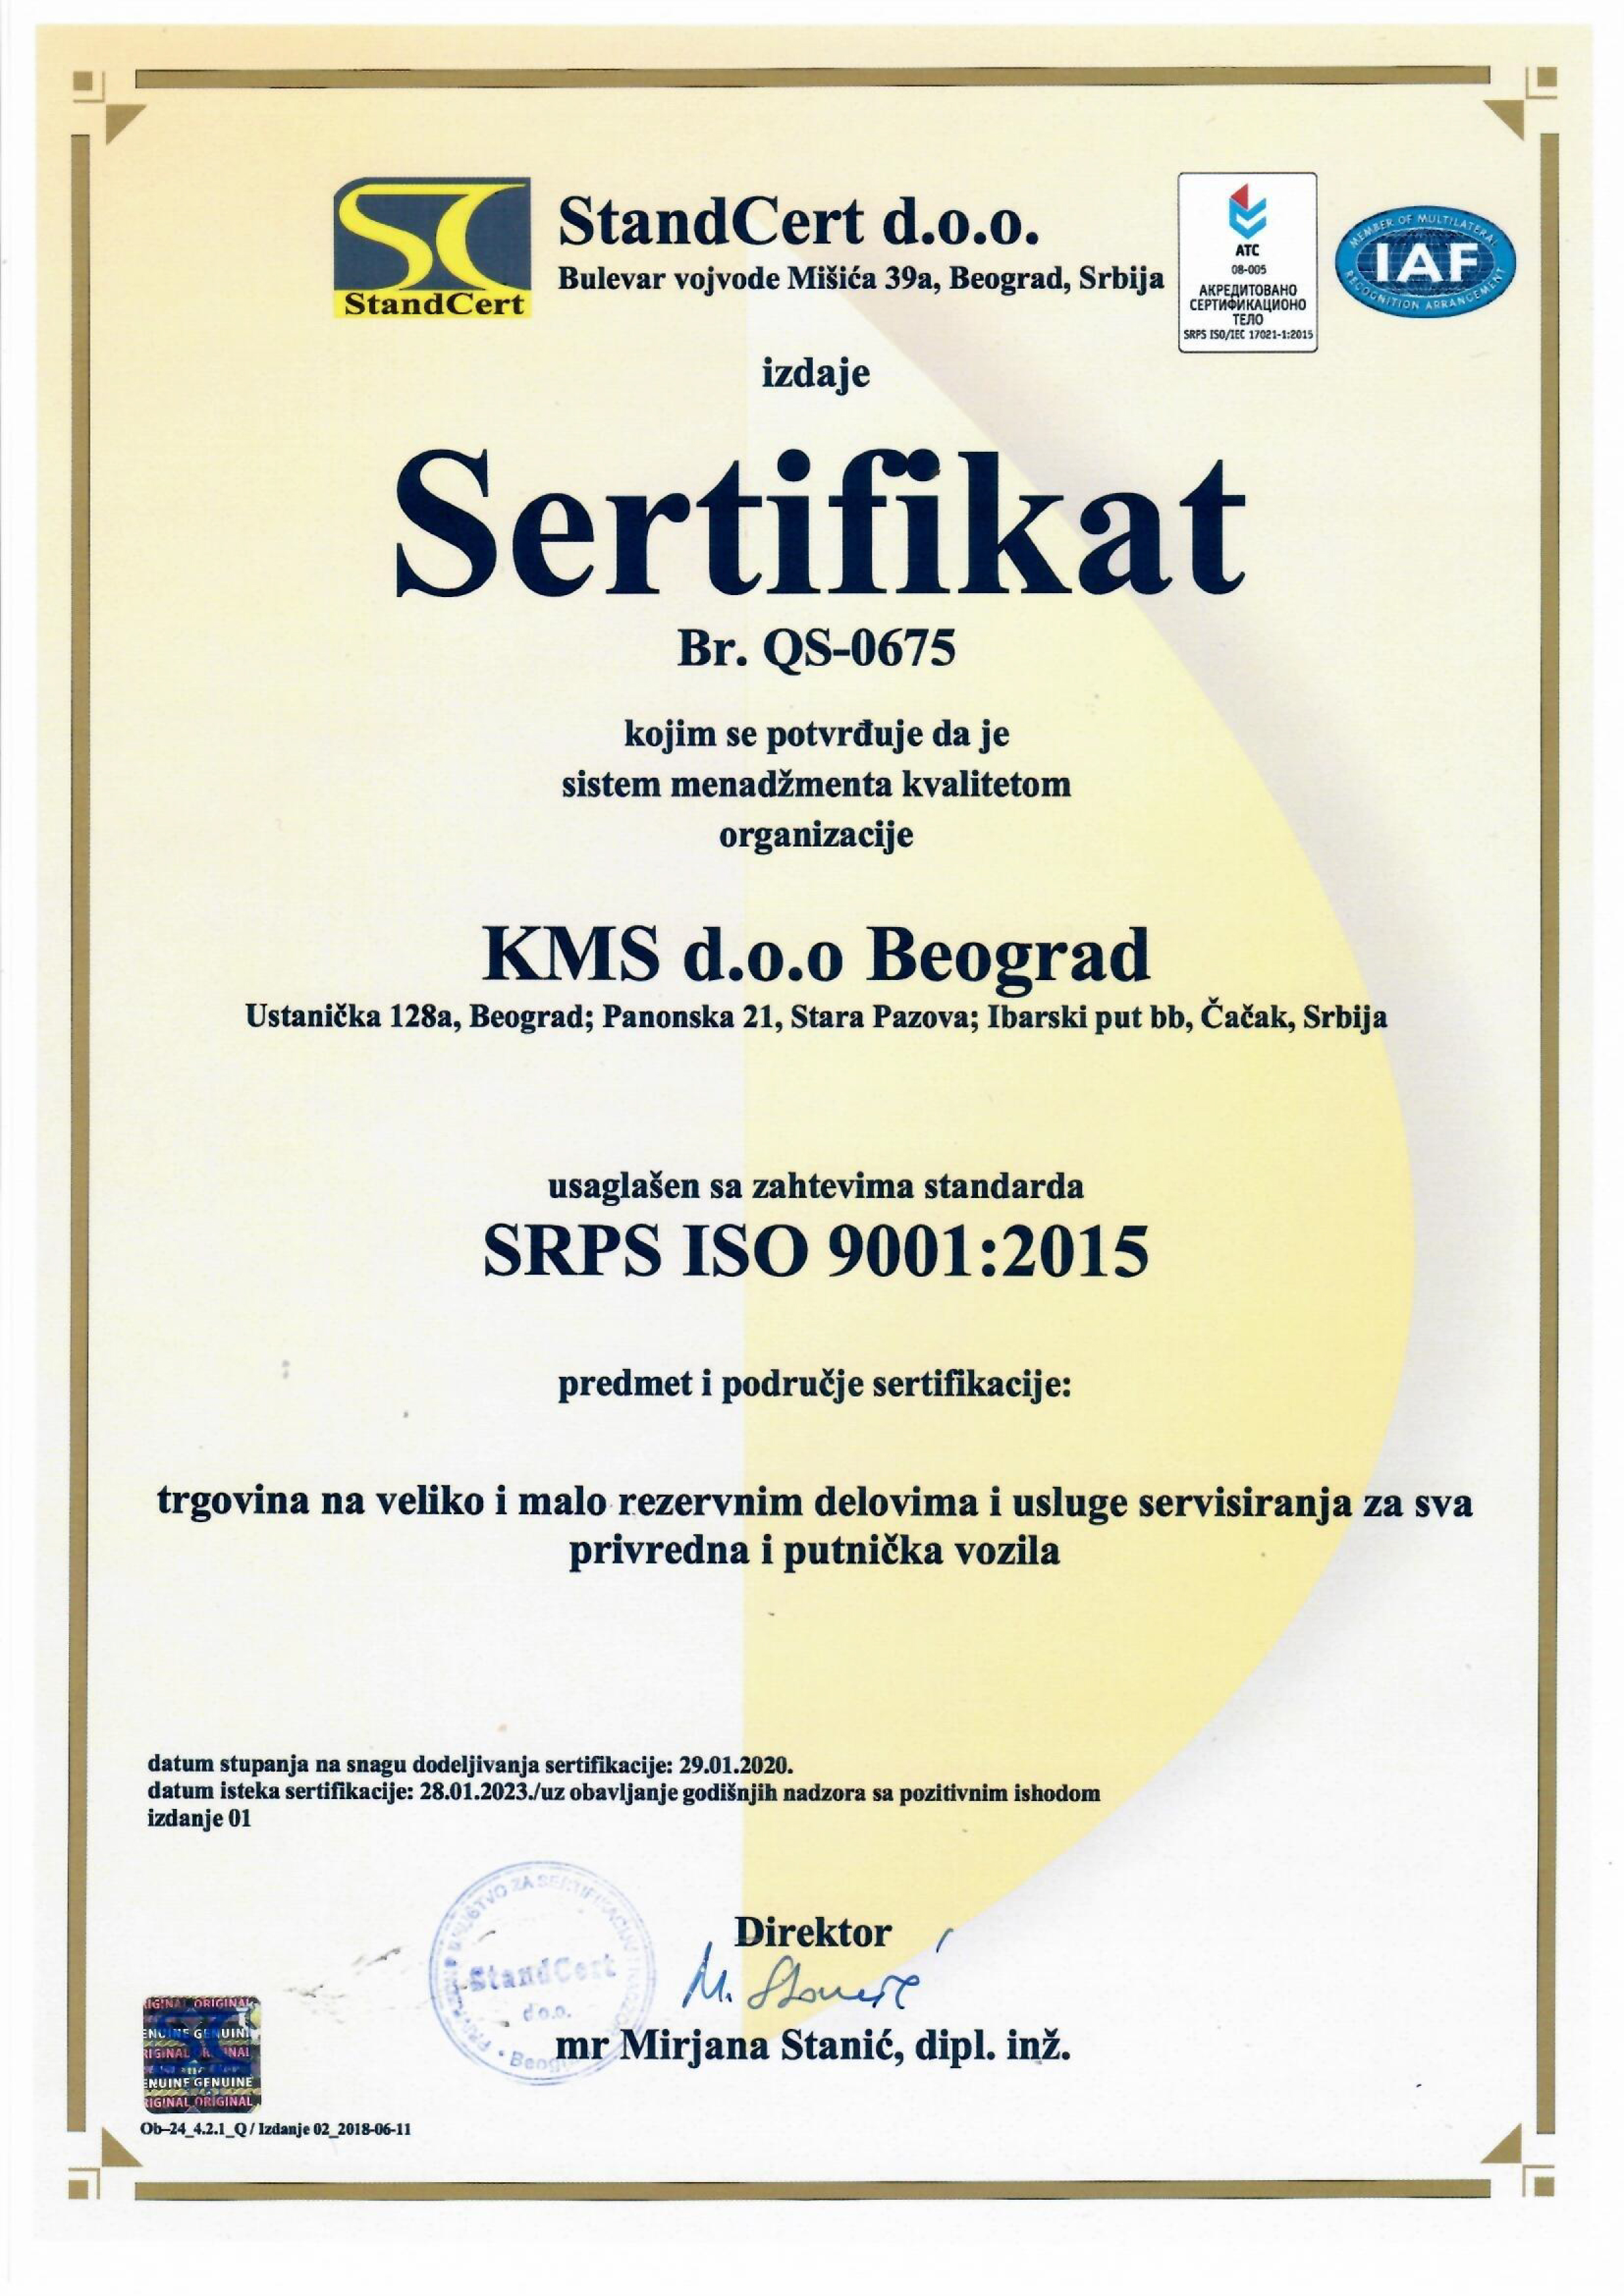 SRPS ISO 9001:2015